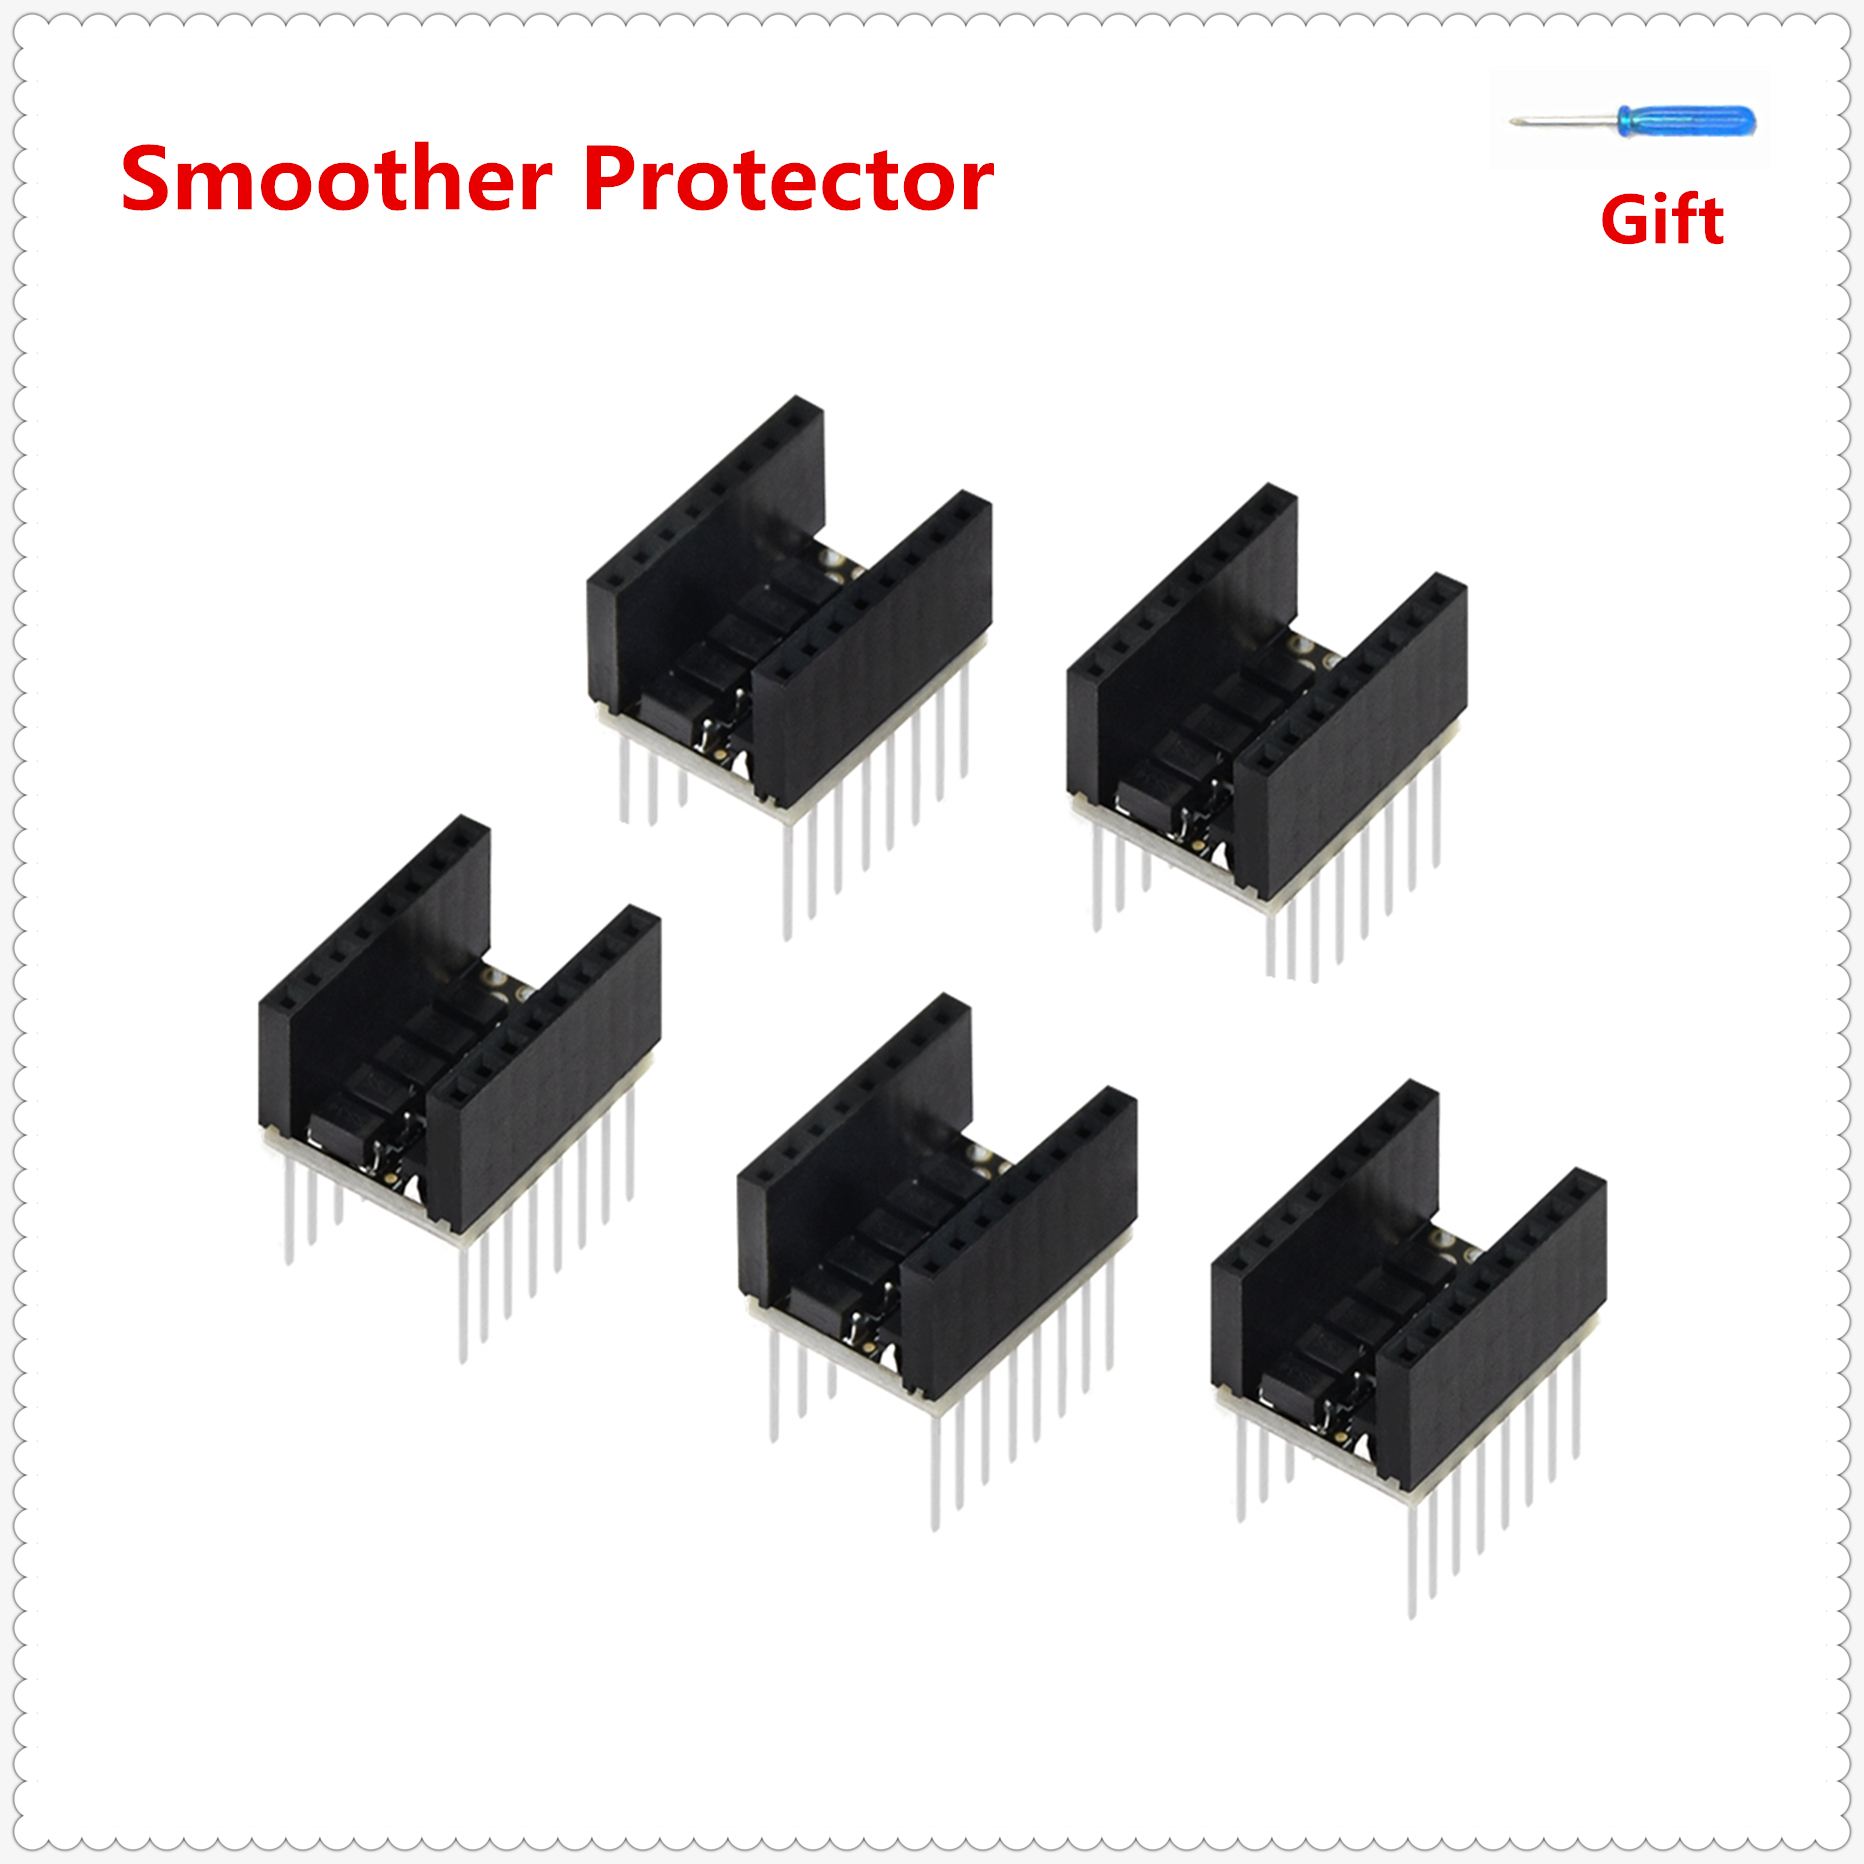 Stepstick Smoother Protector Stepper Eliminator Texture Smooth Filter Stabilizer Module Plug Type For Stepper Driver Motor